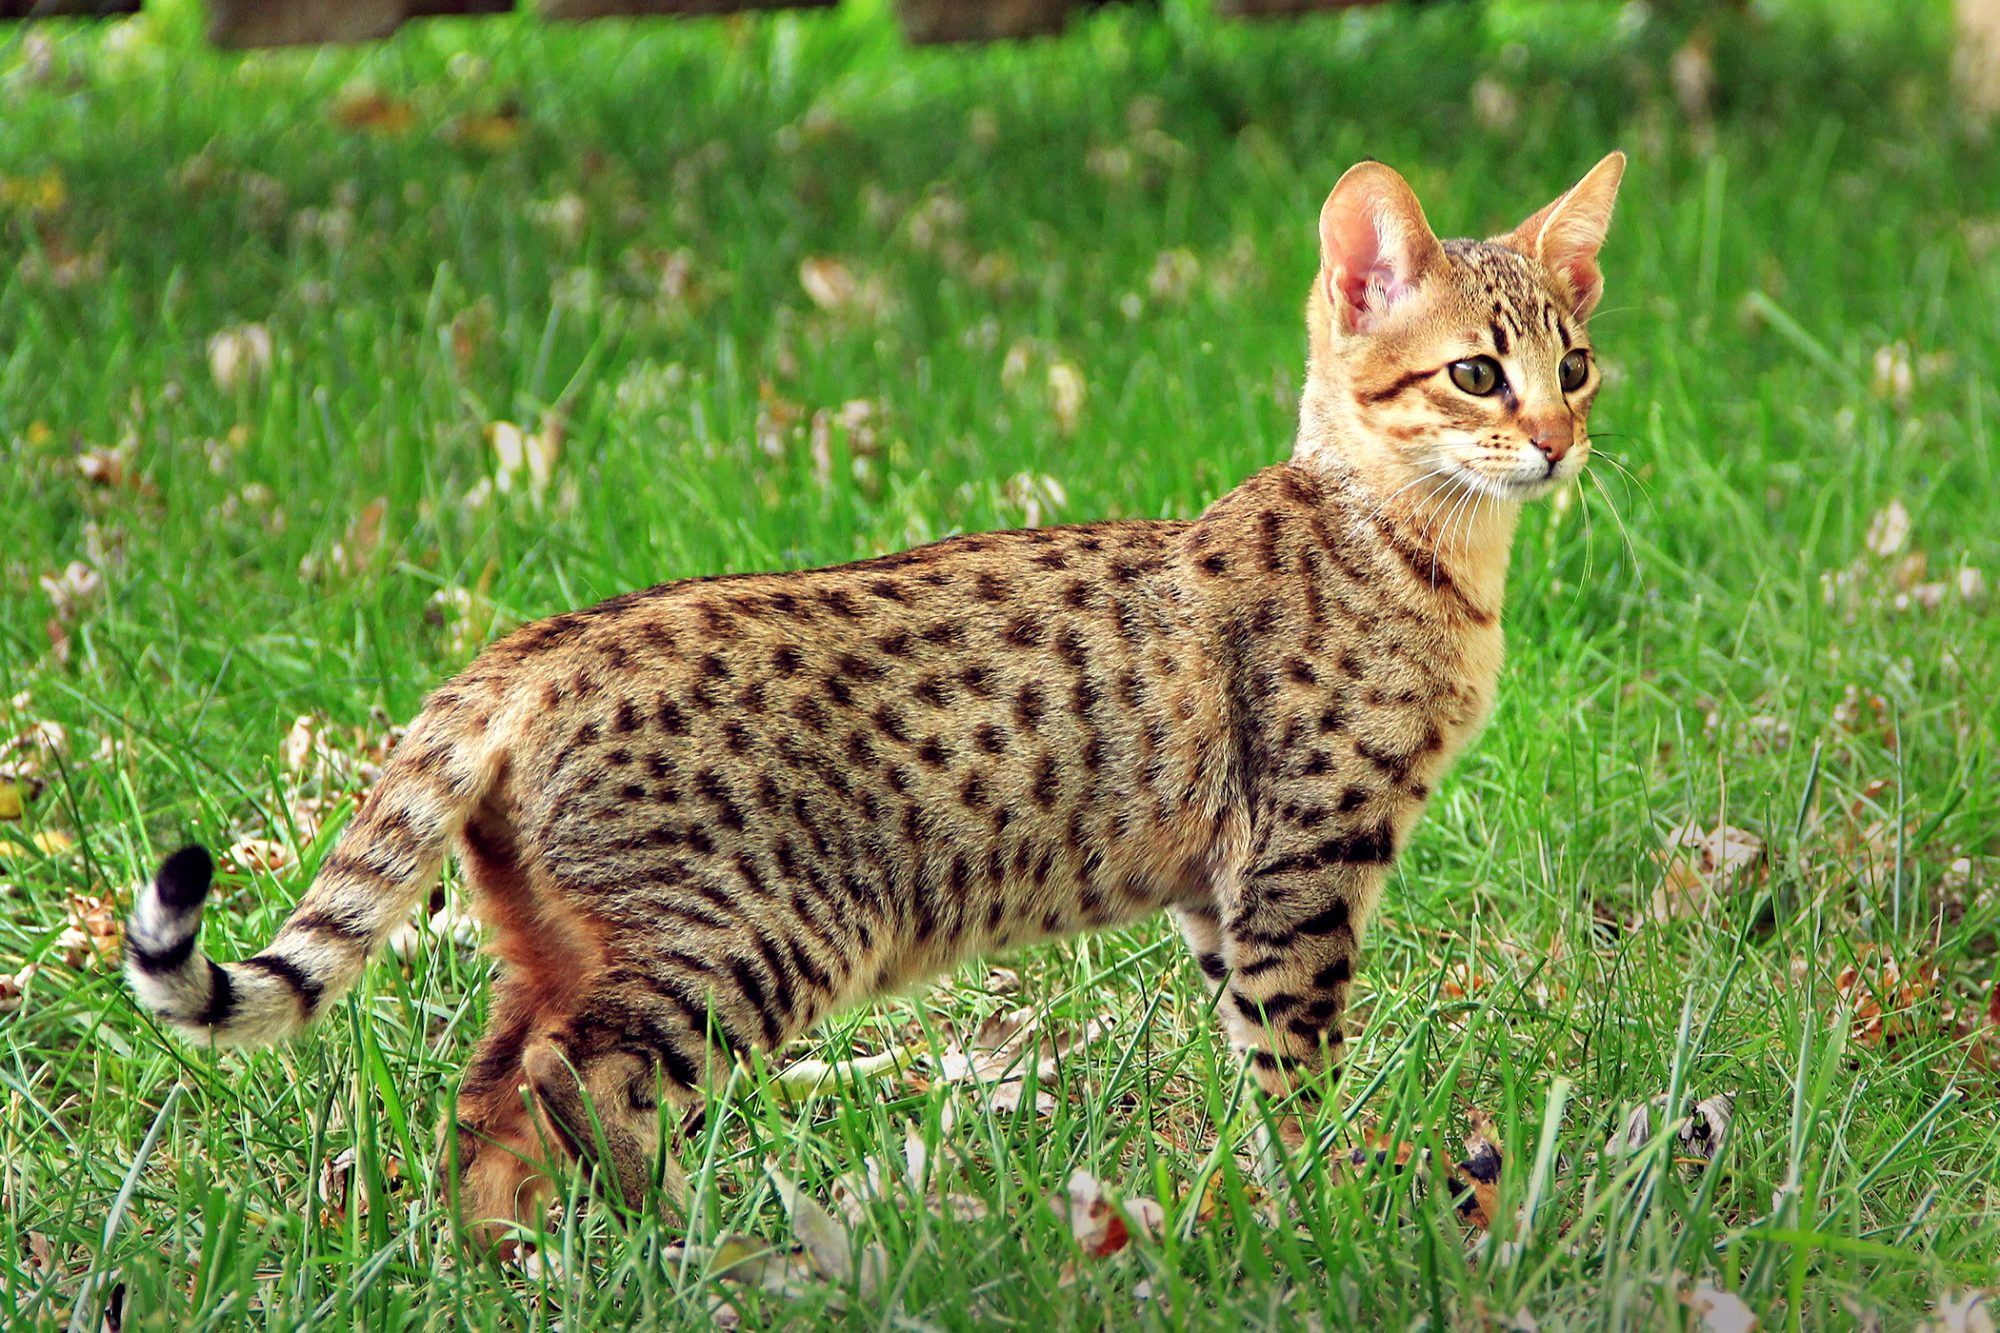 Savannah cat stands inquisitively in grass